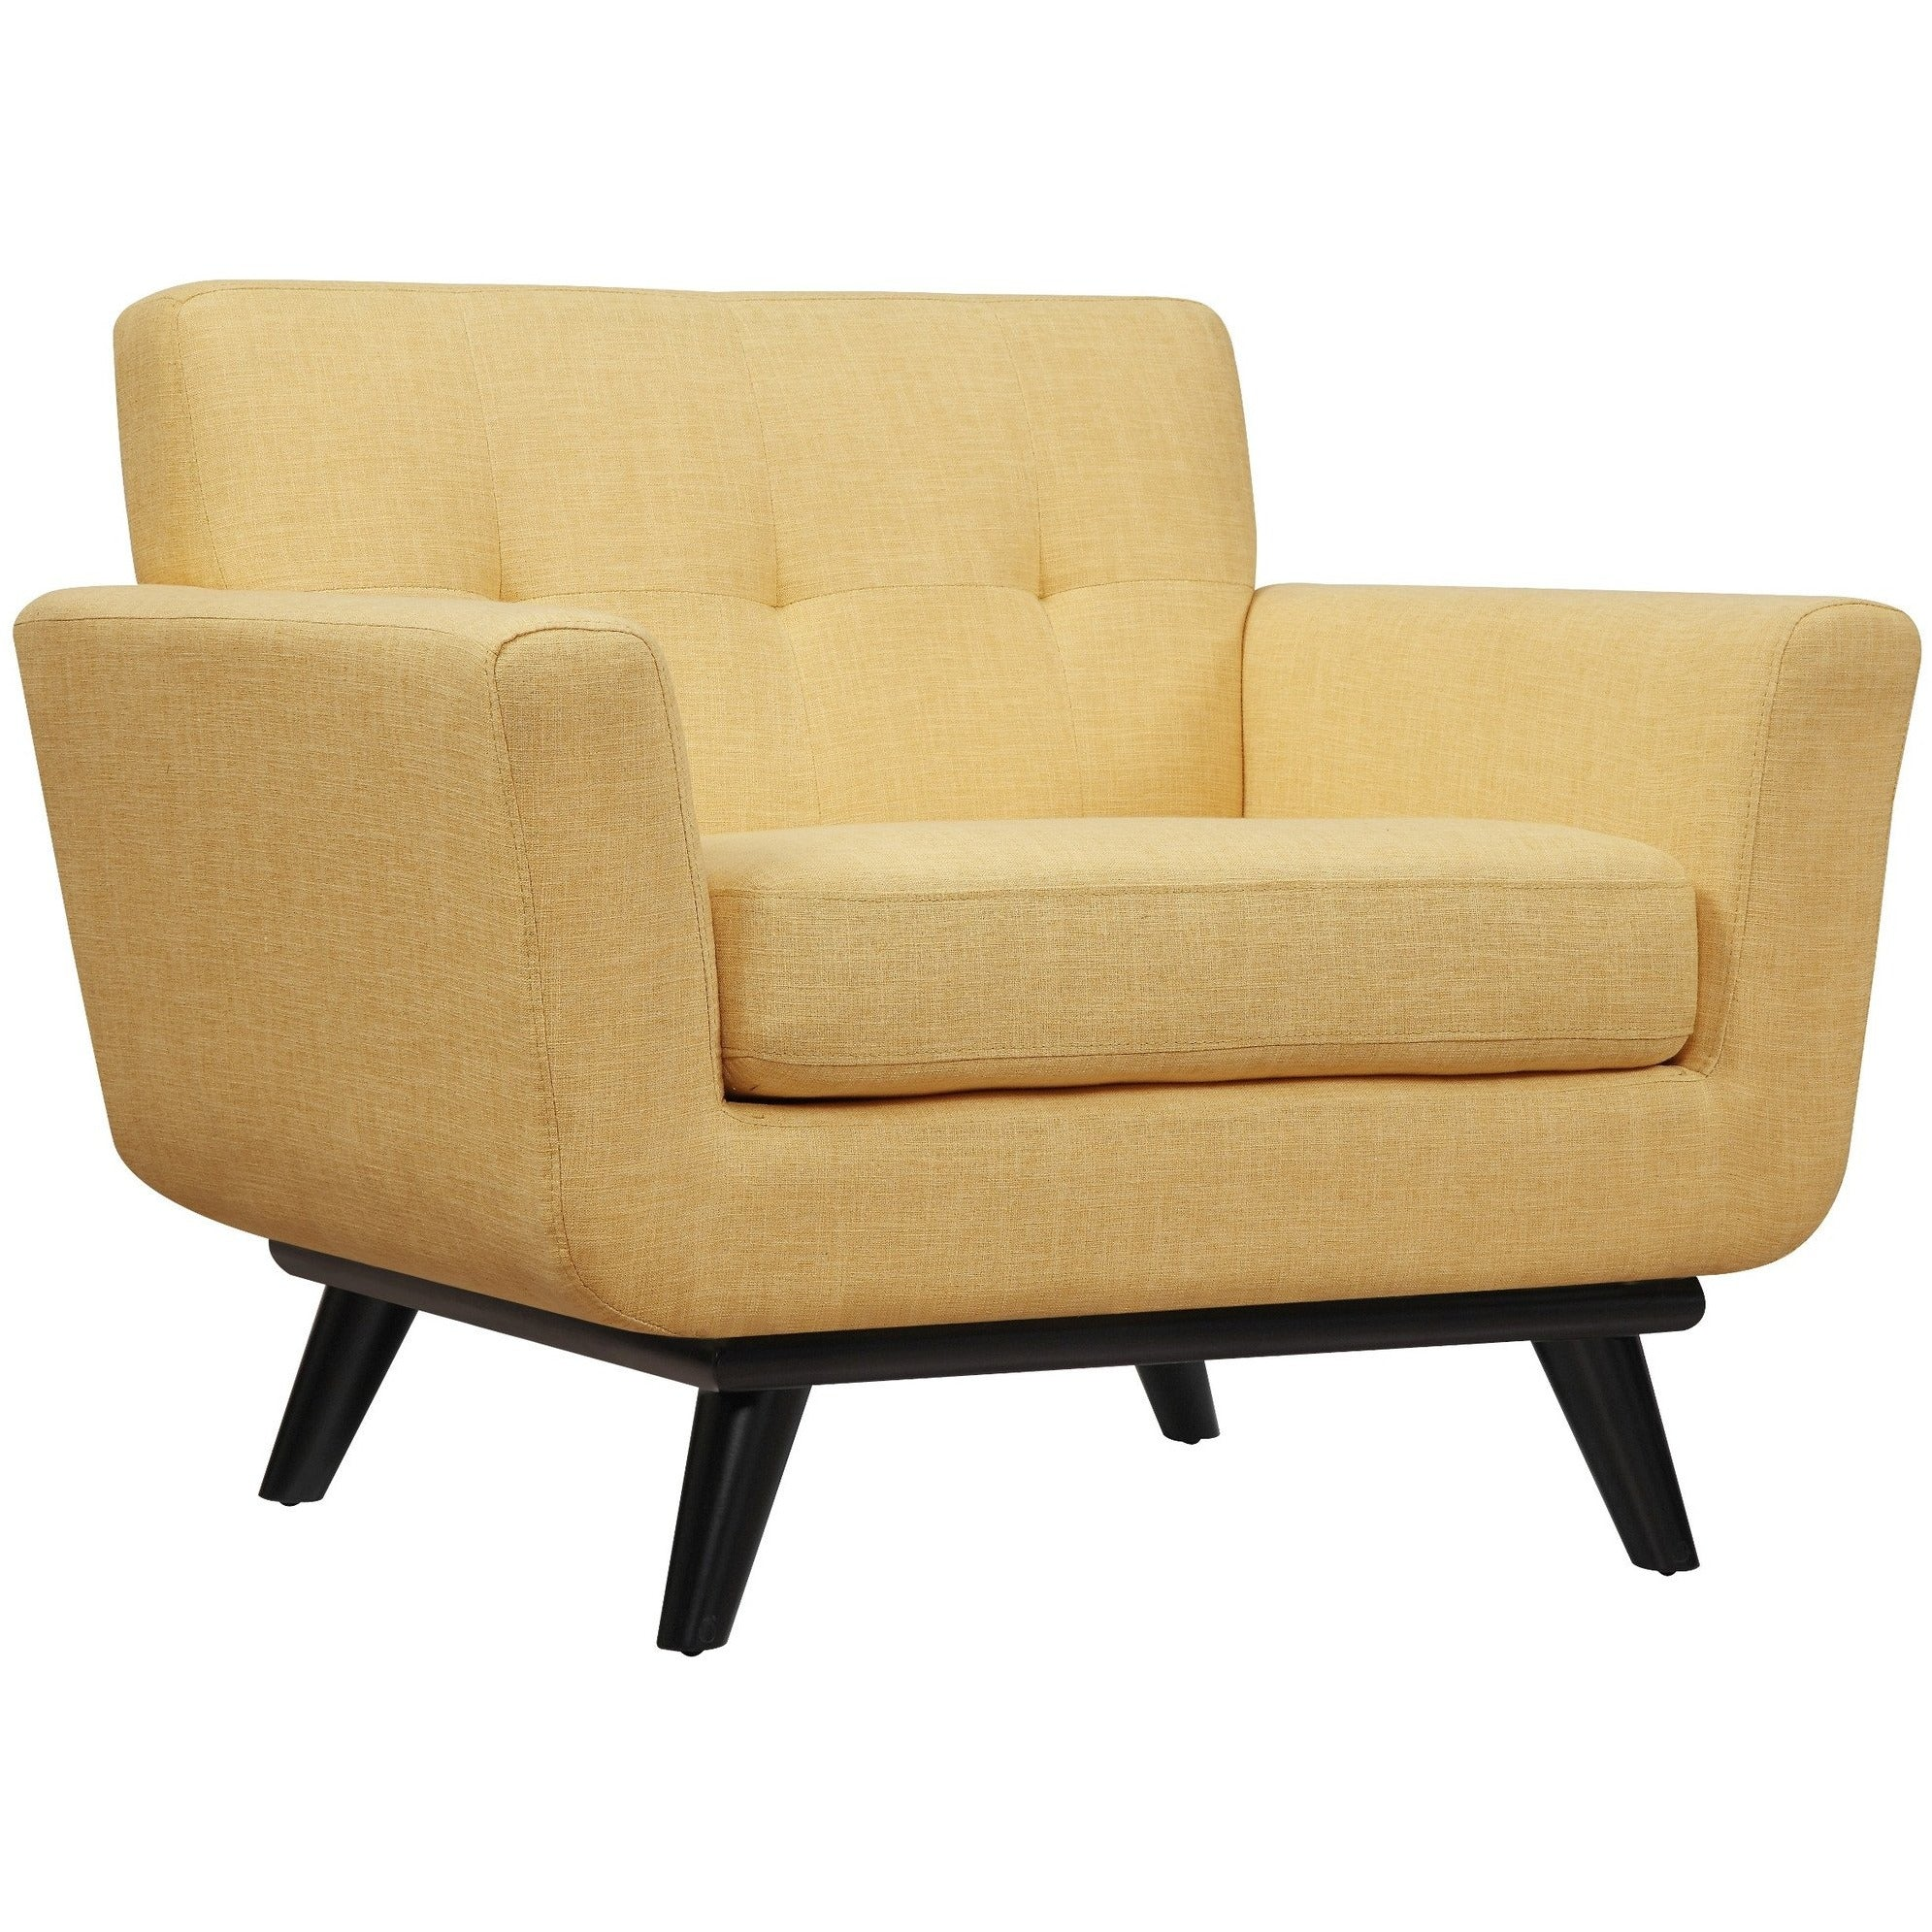 Tov Furniture Modern James Mustard Yellow Linen Chair Tov A55